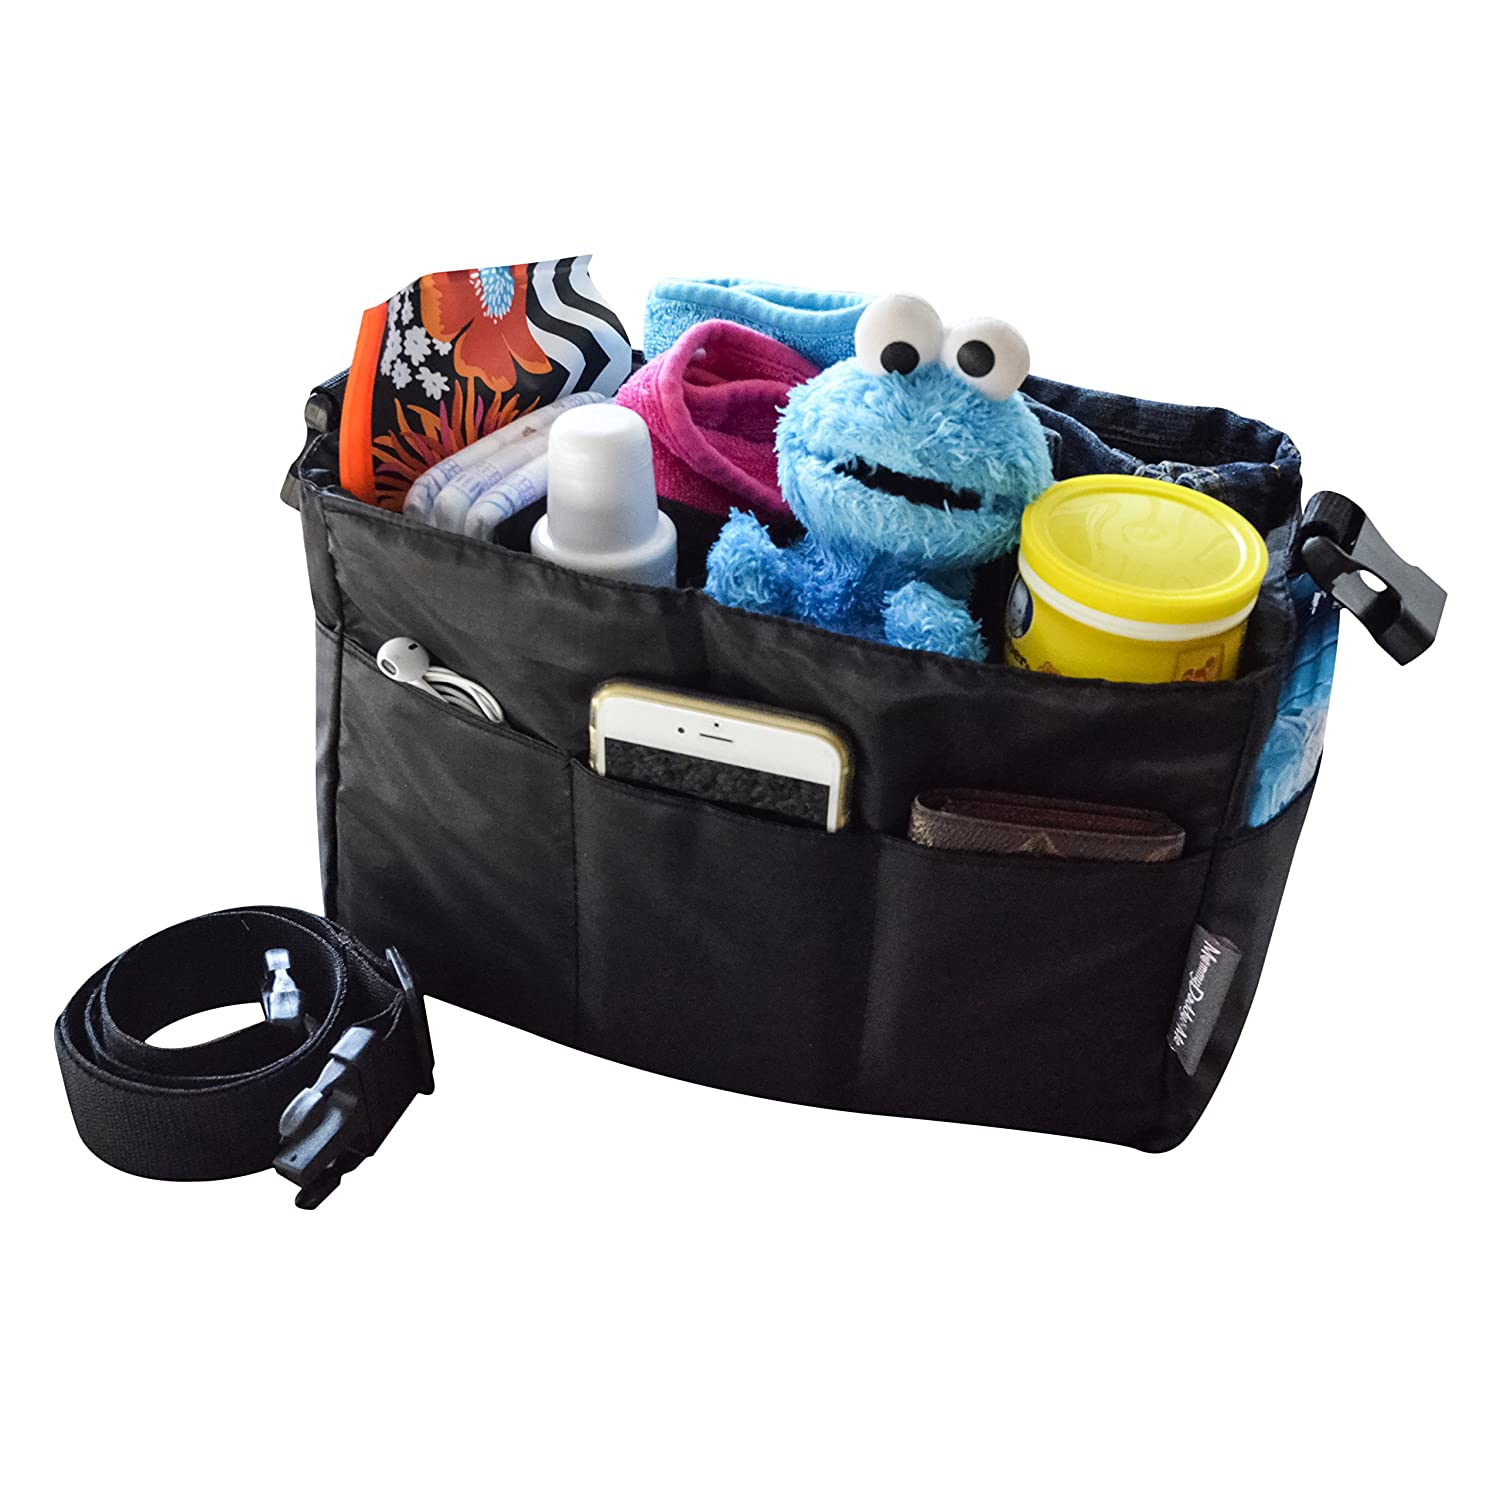 Diaper Bag Insert Organizer For Stylish Moms, Black, 12 Pockets, Turn Your Favorite Tote Bag Into A Trendy Diaper Bag, By Mommy Daddy&Me by Mommy Daddy&Me